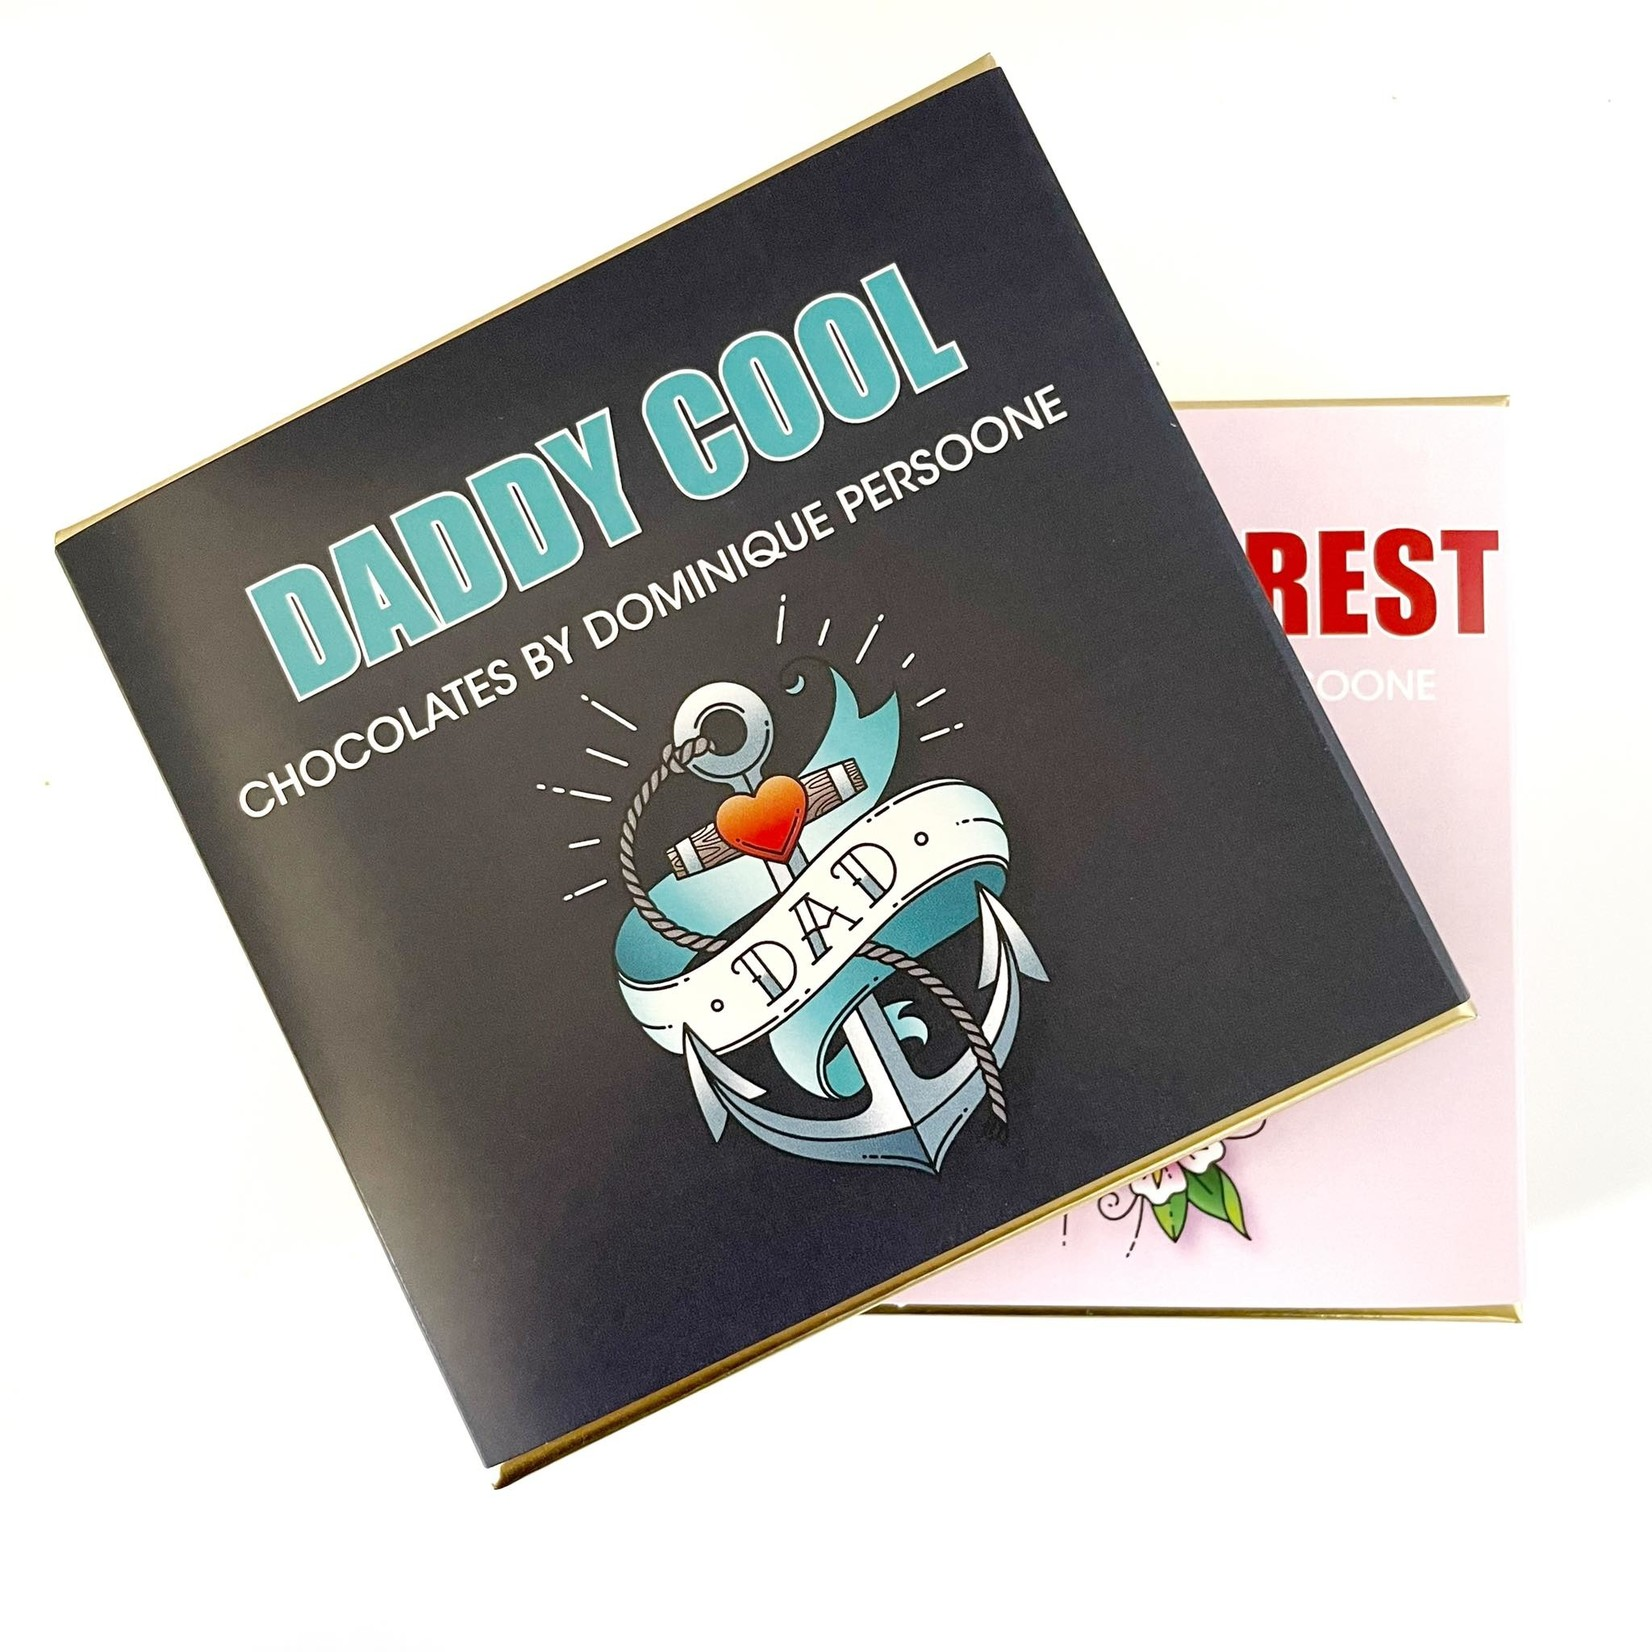 My Way - Daddy Cool